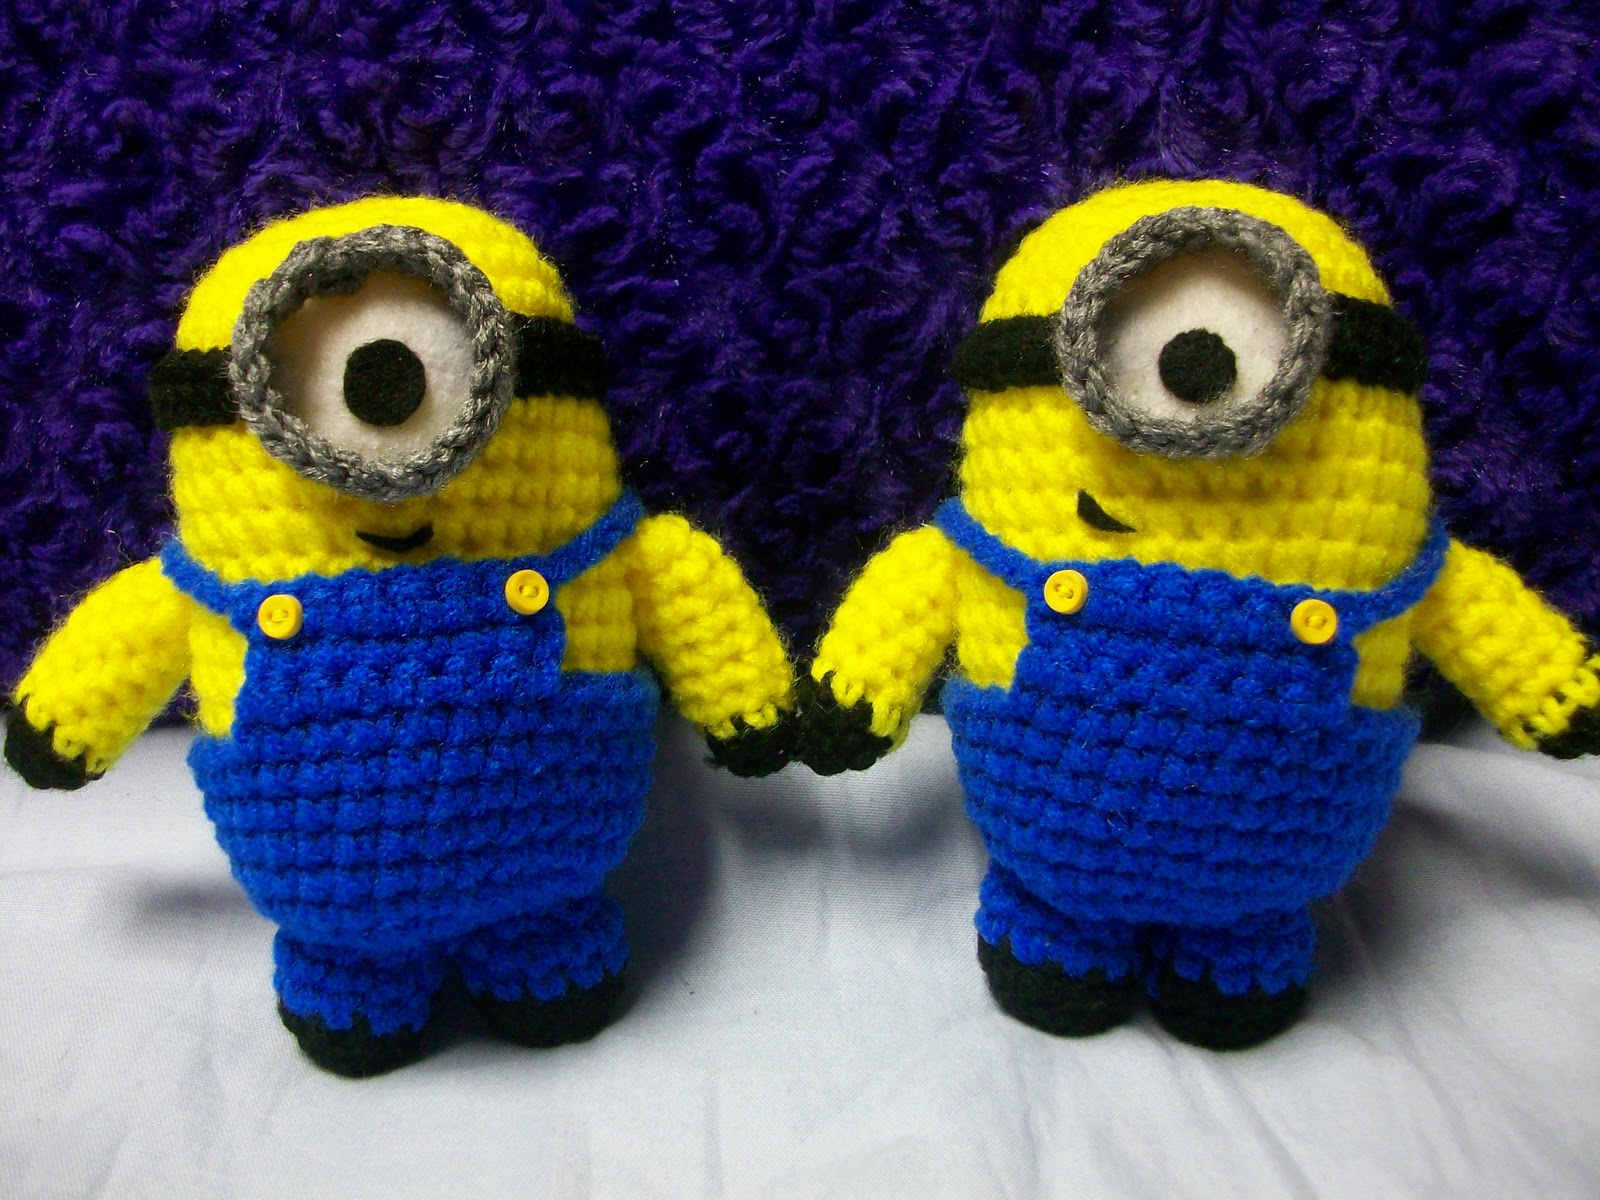 Crochet Patterns Minions : 2000 Free Amigurumi Patterns: Free Despicable Me Minion ...